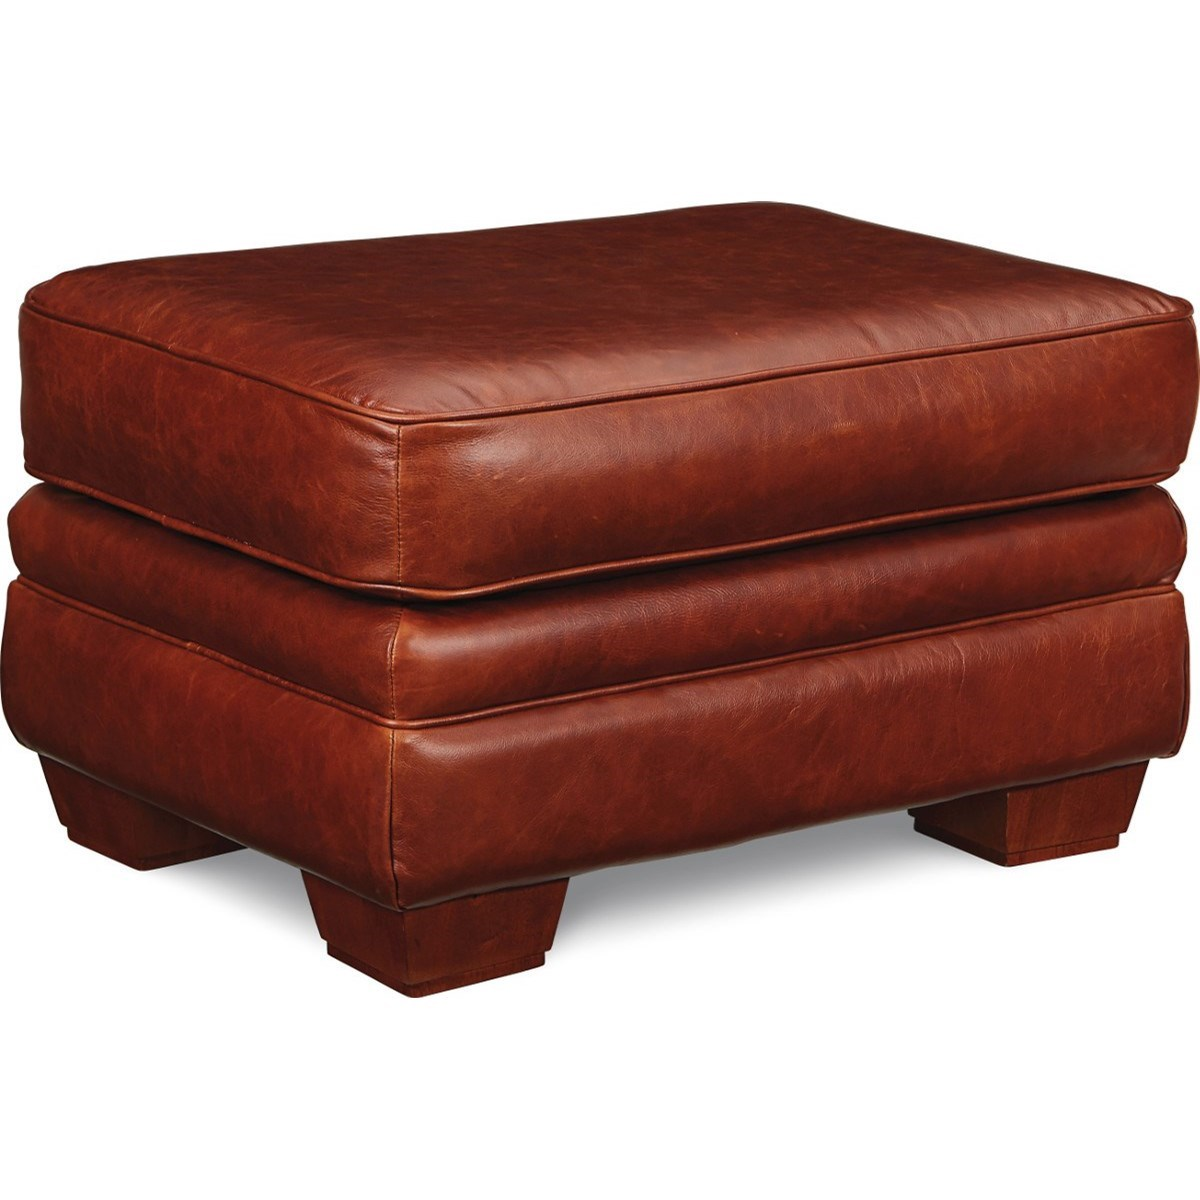 Ottoman with Premier ComfortCore Cushion